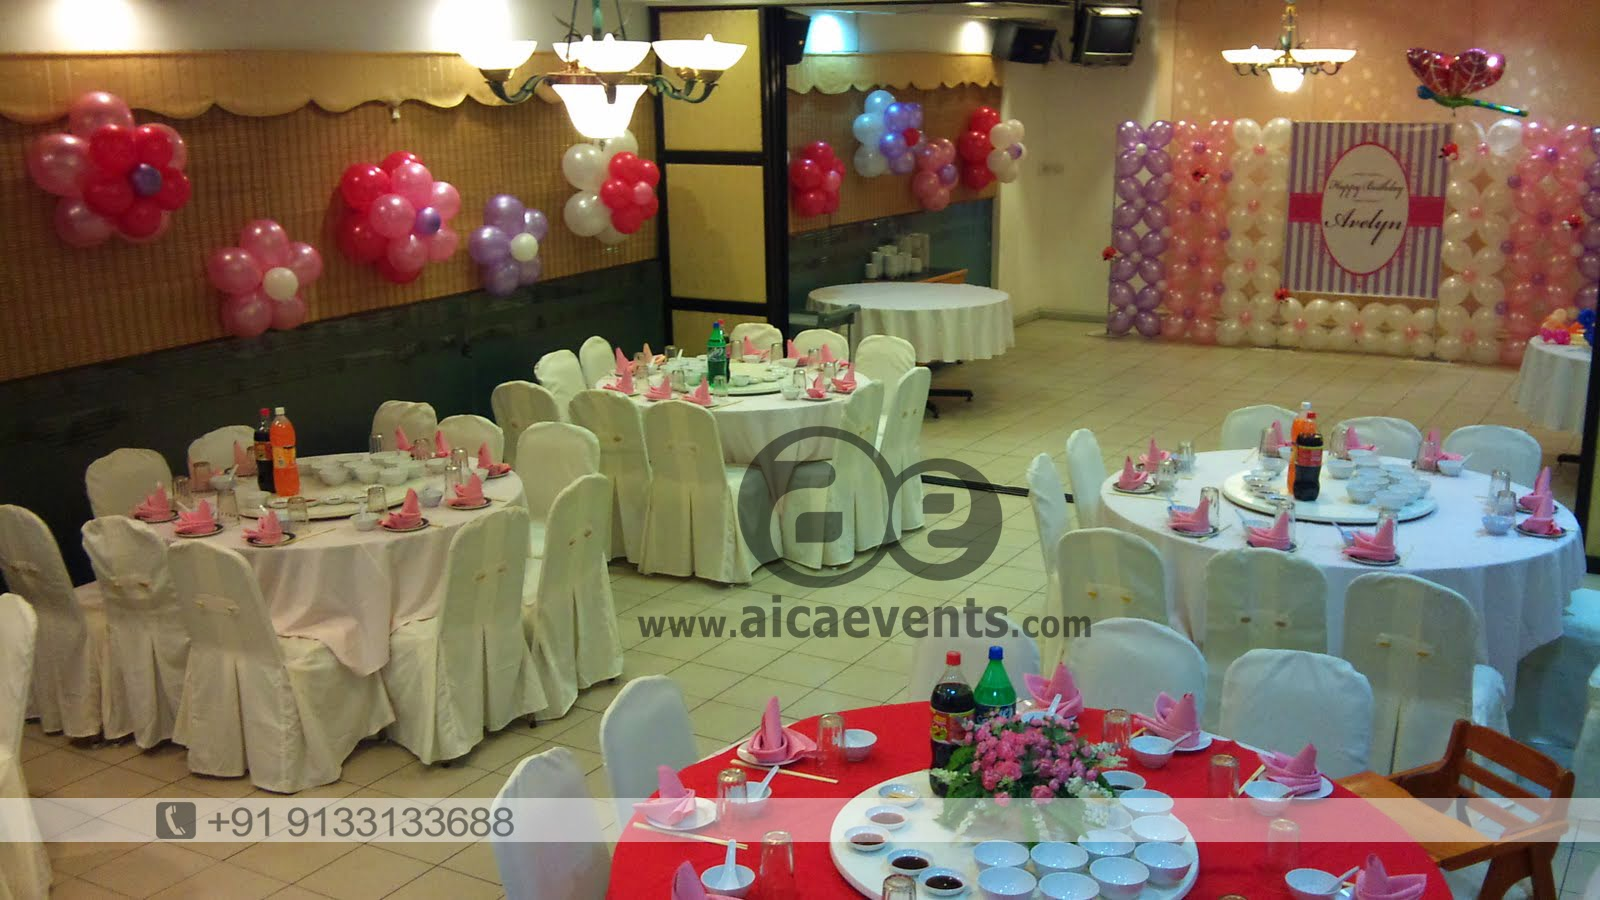 Aicaevents balloon decoration for birthday parties sitting decoration amipublicfo Image collections